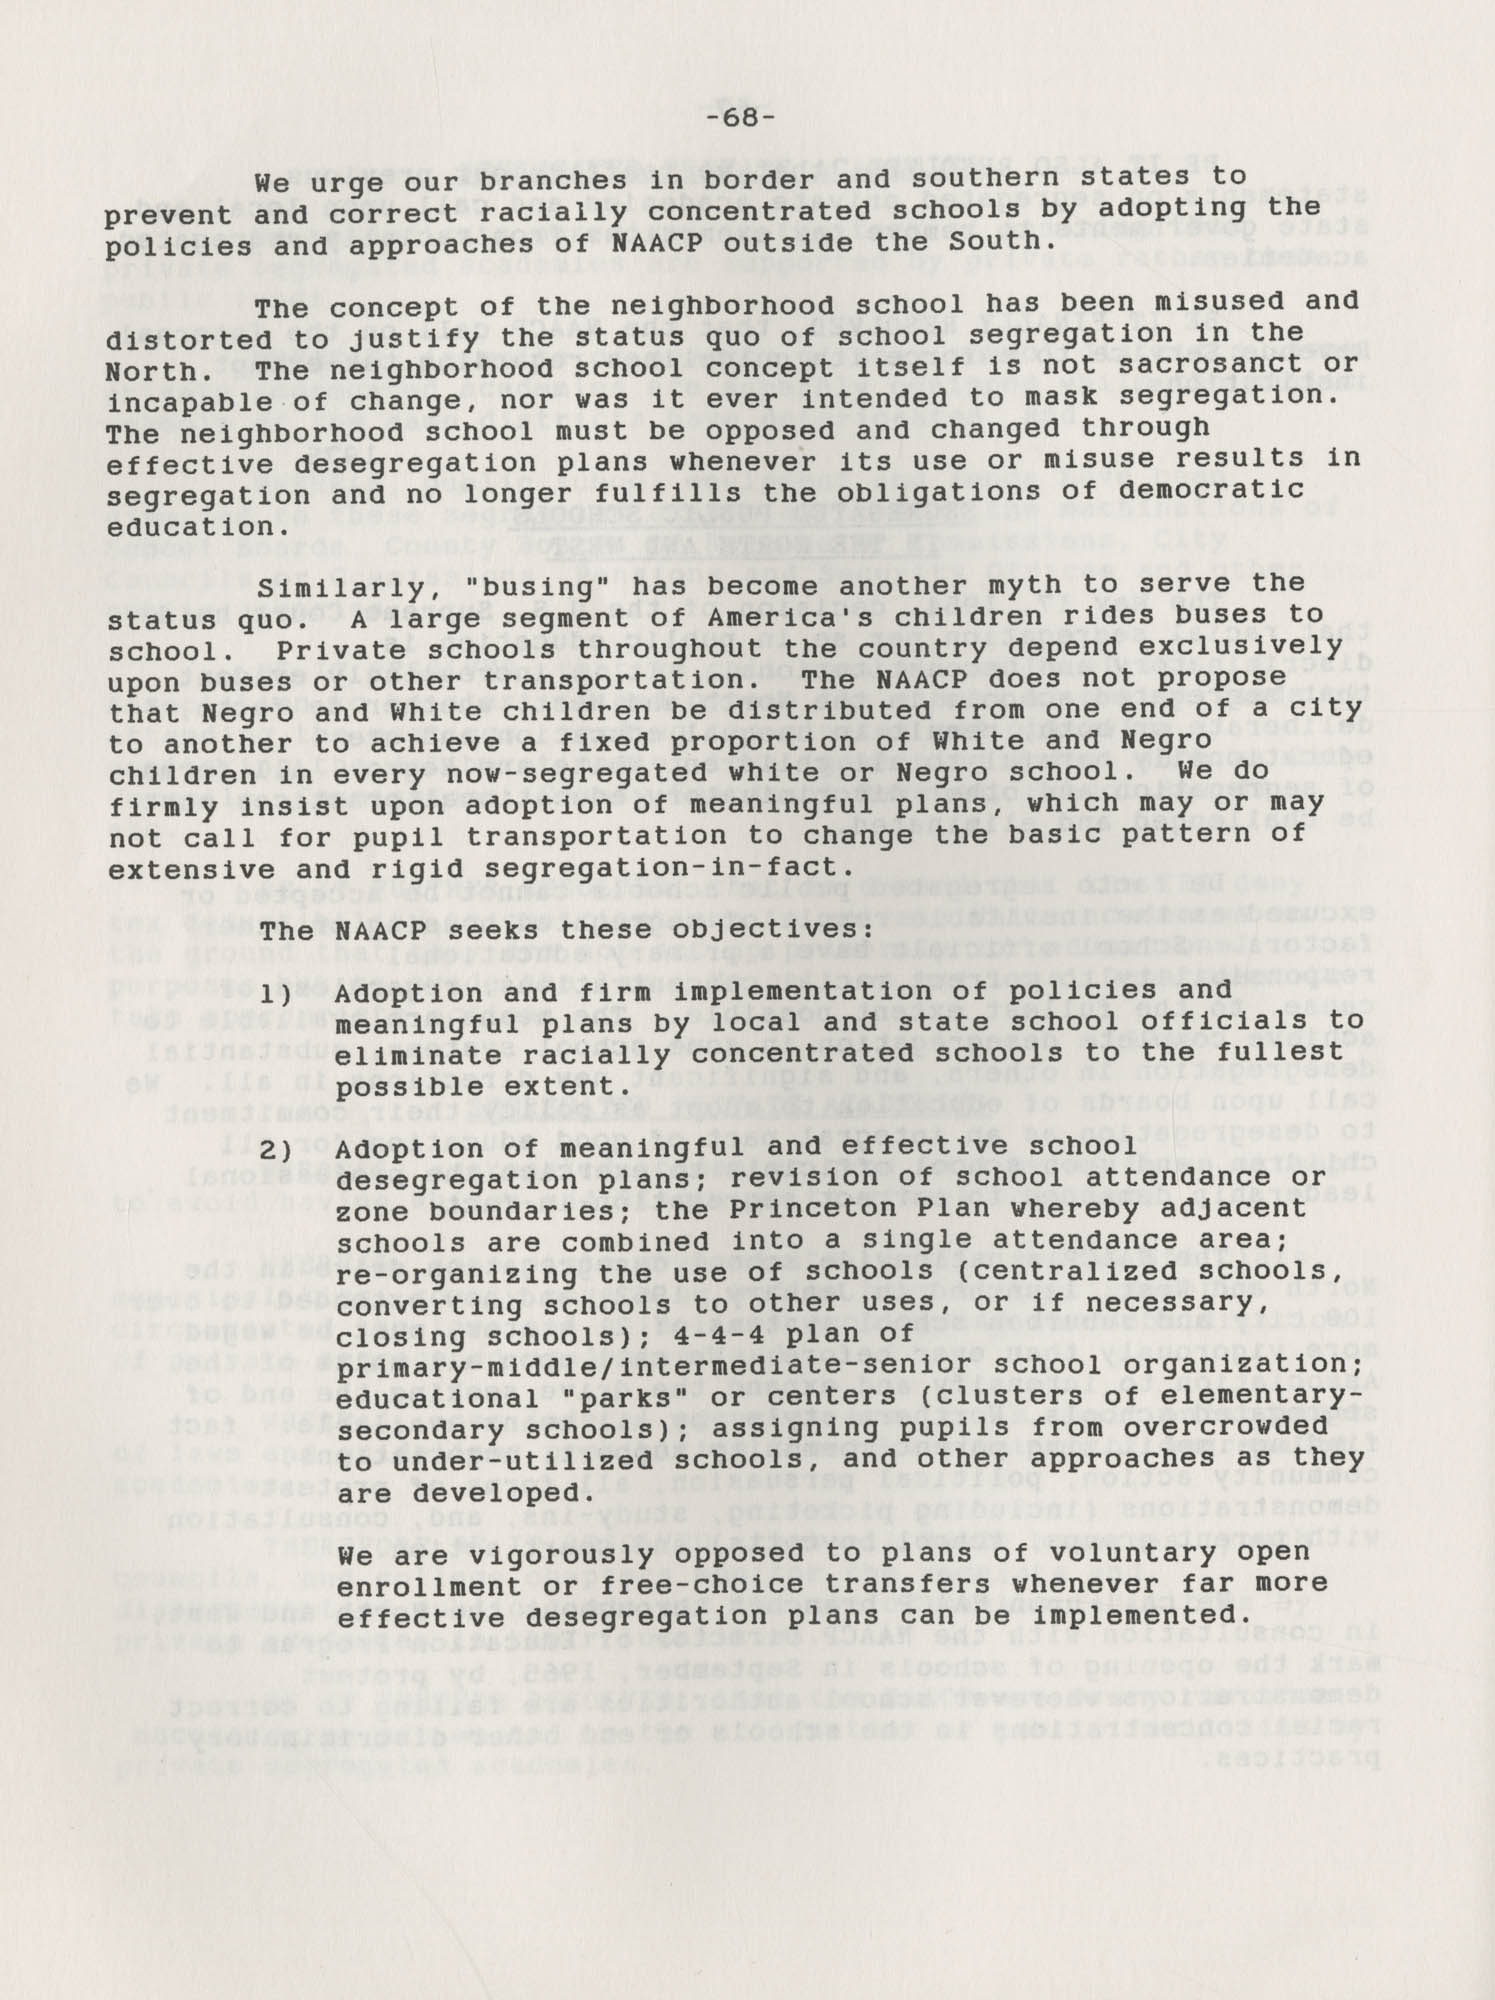 NAACP Resolutions on Education, 1970-1989, Index to Education Resolutions, Page 68